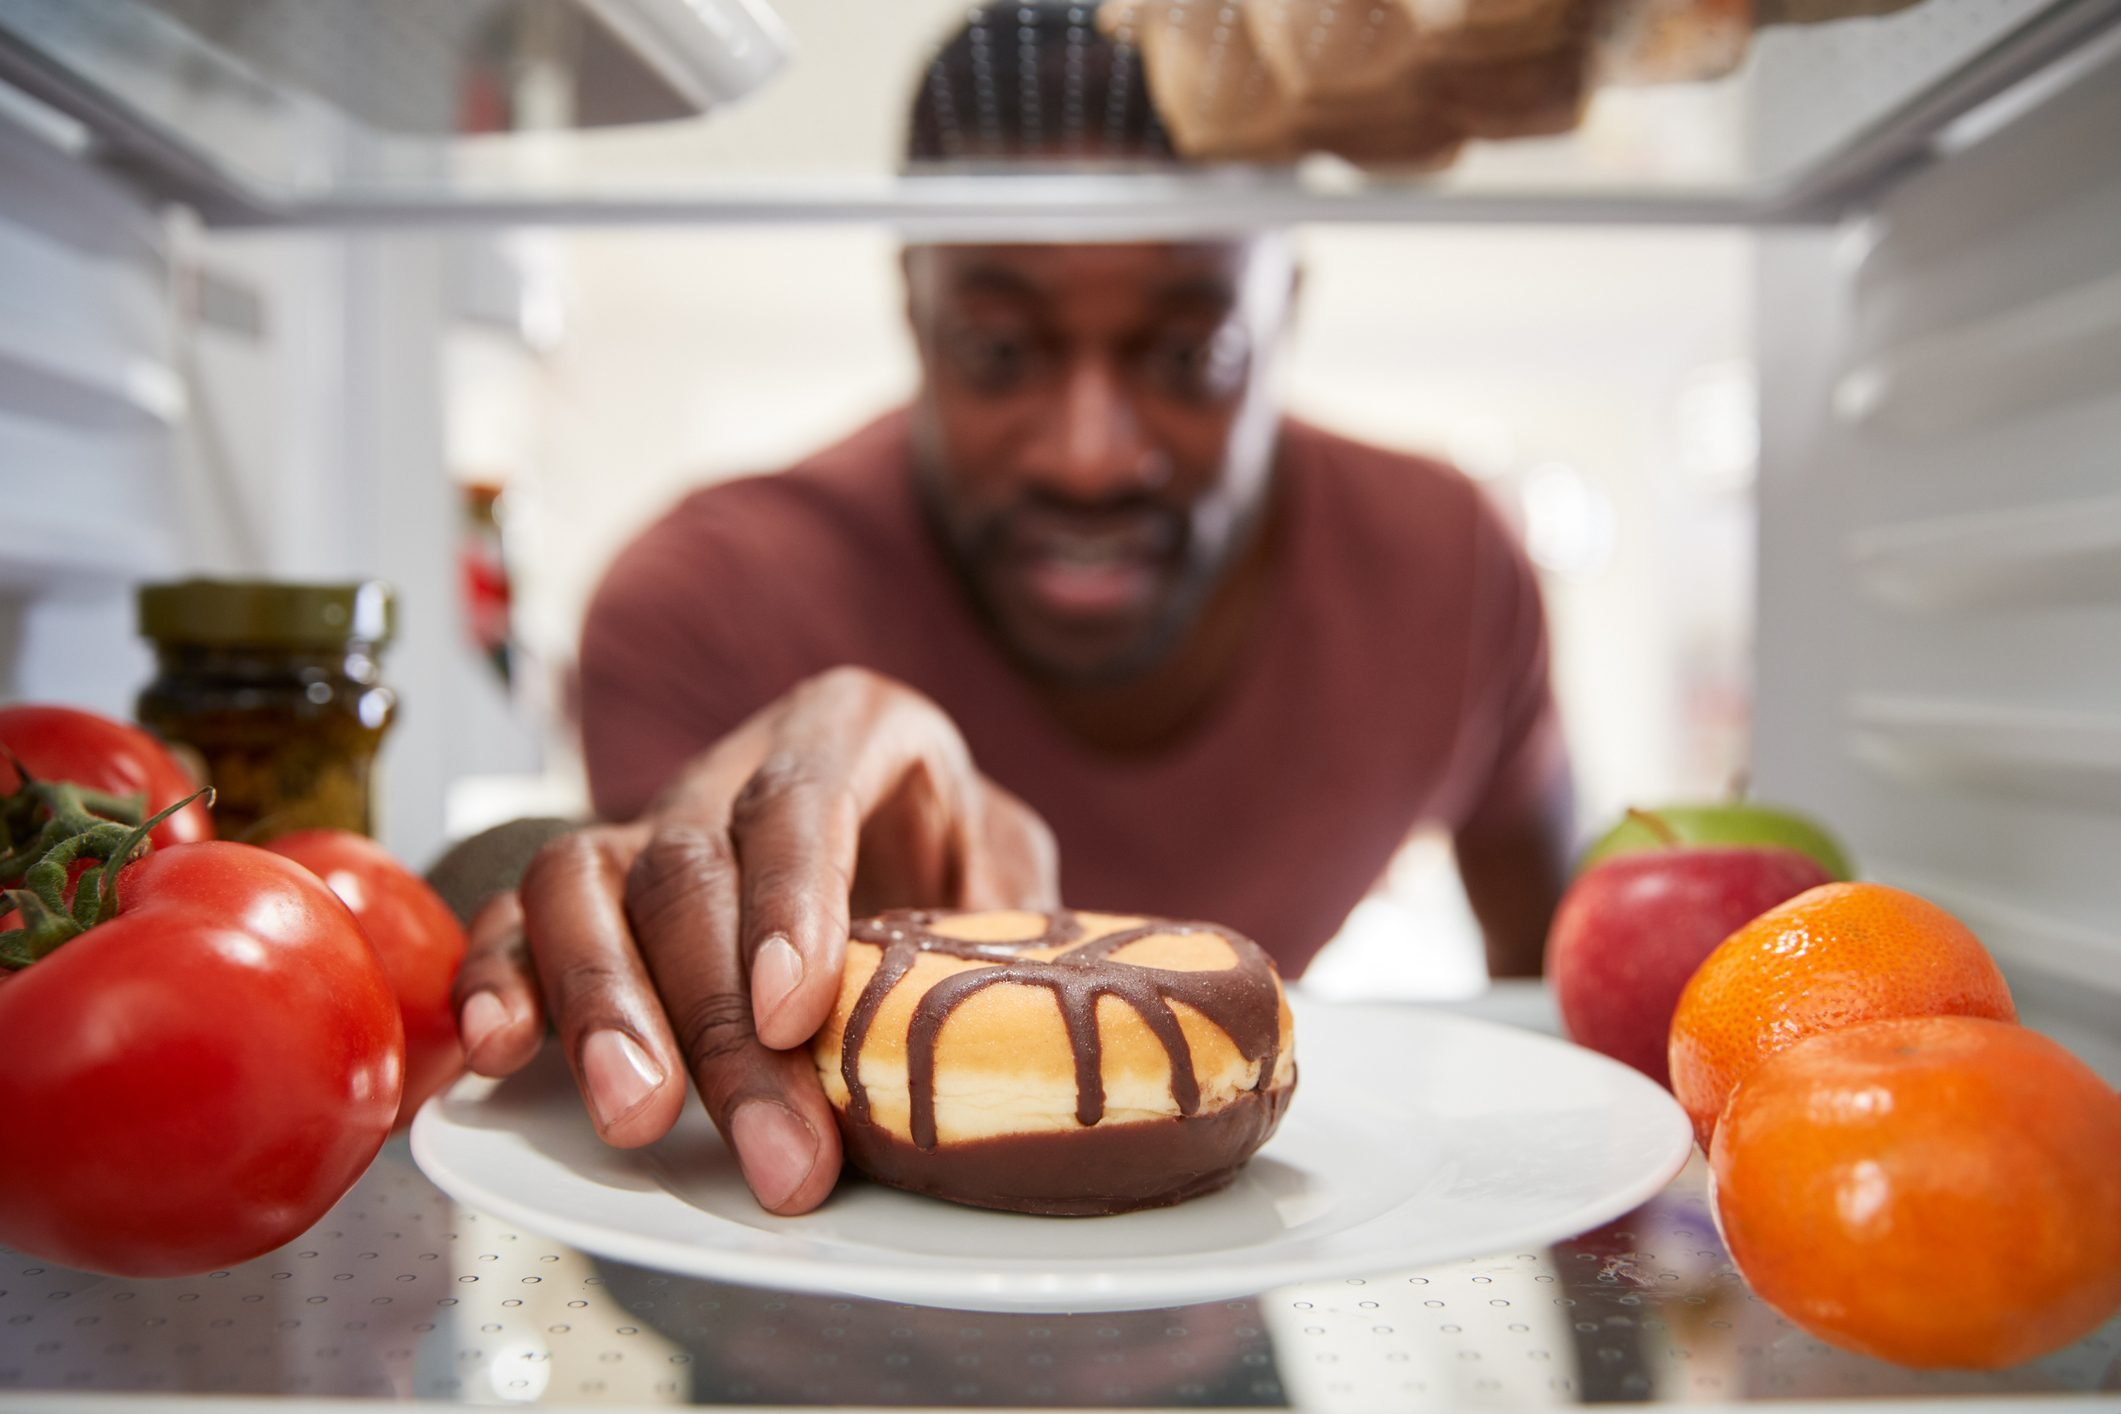 view from inside of refrigerator as man reaches for donut